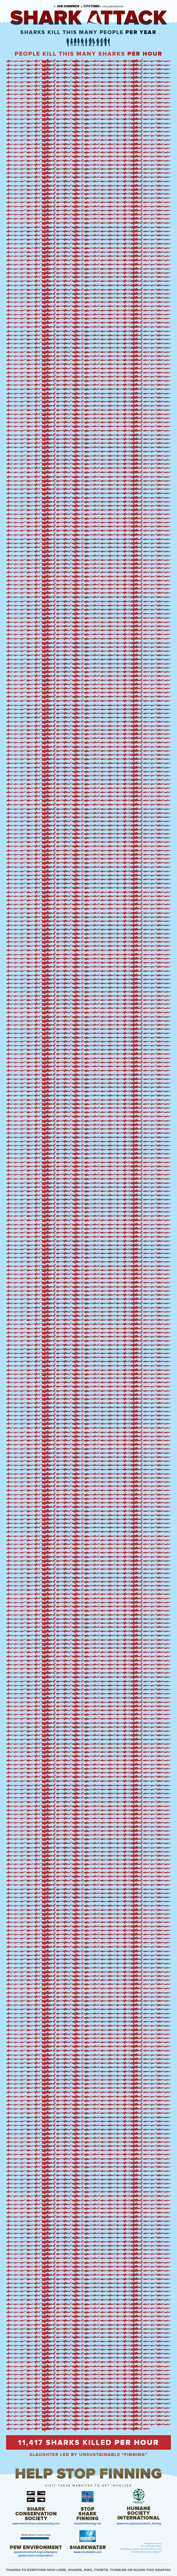 shark-attack-stop-finning-infographic.png